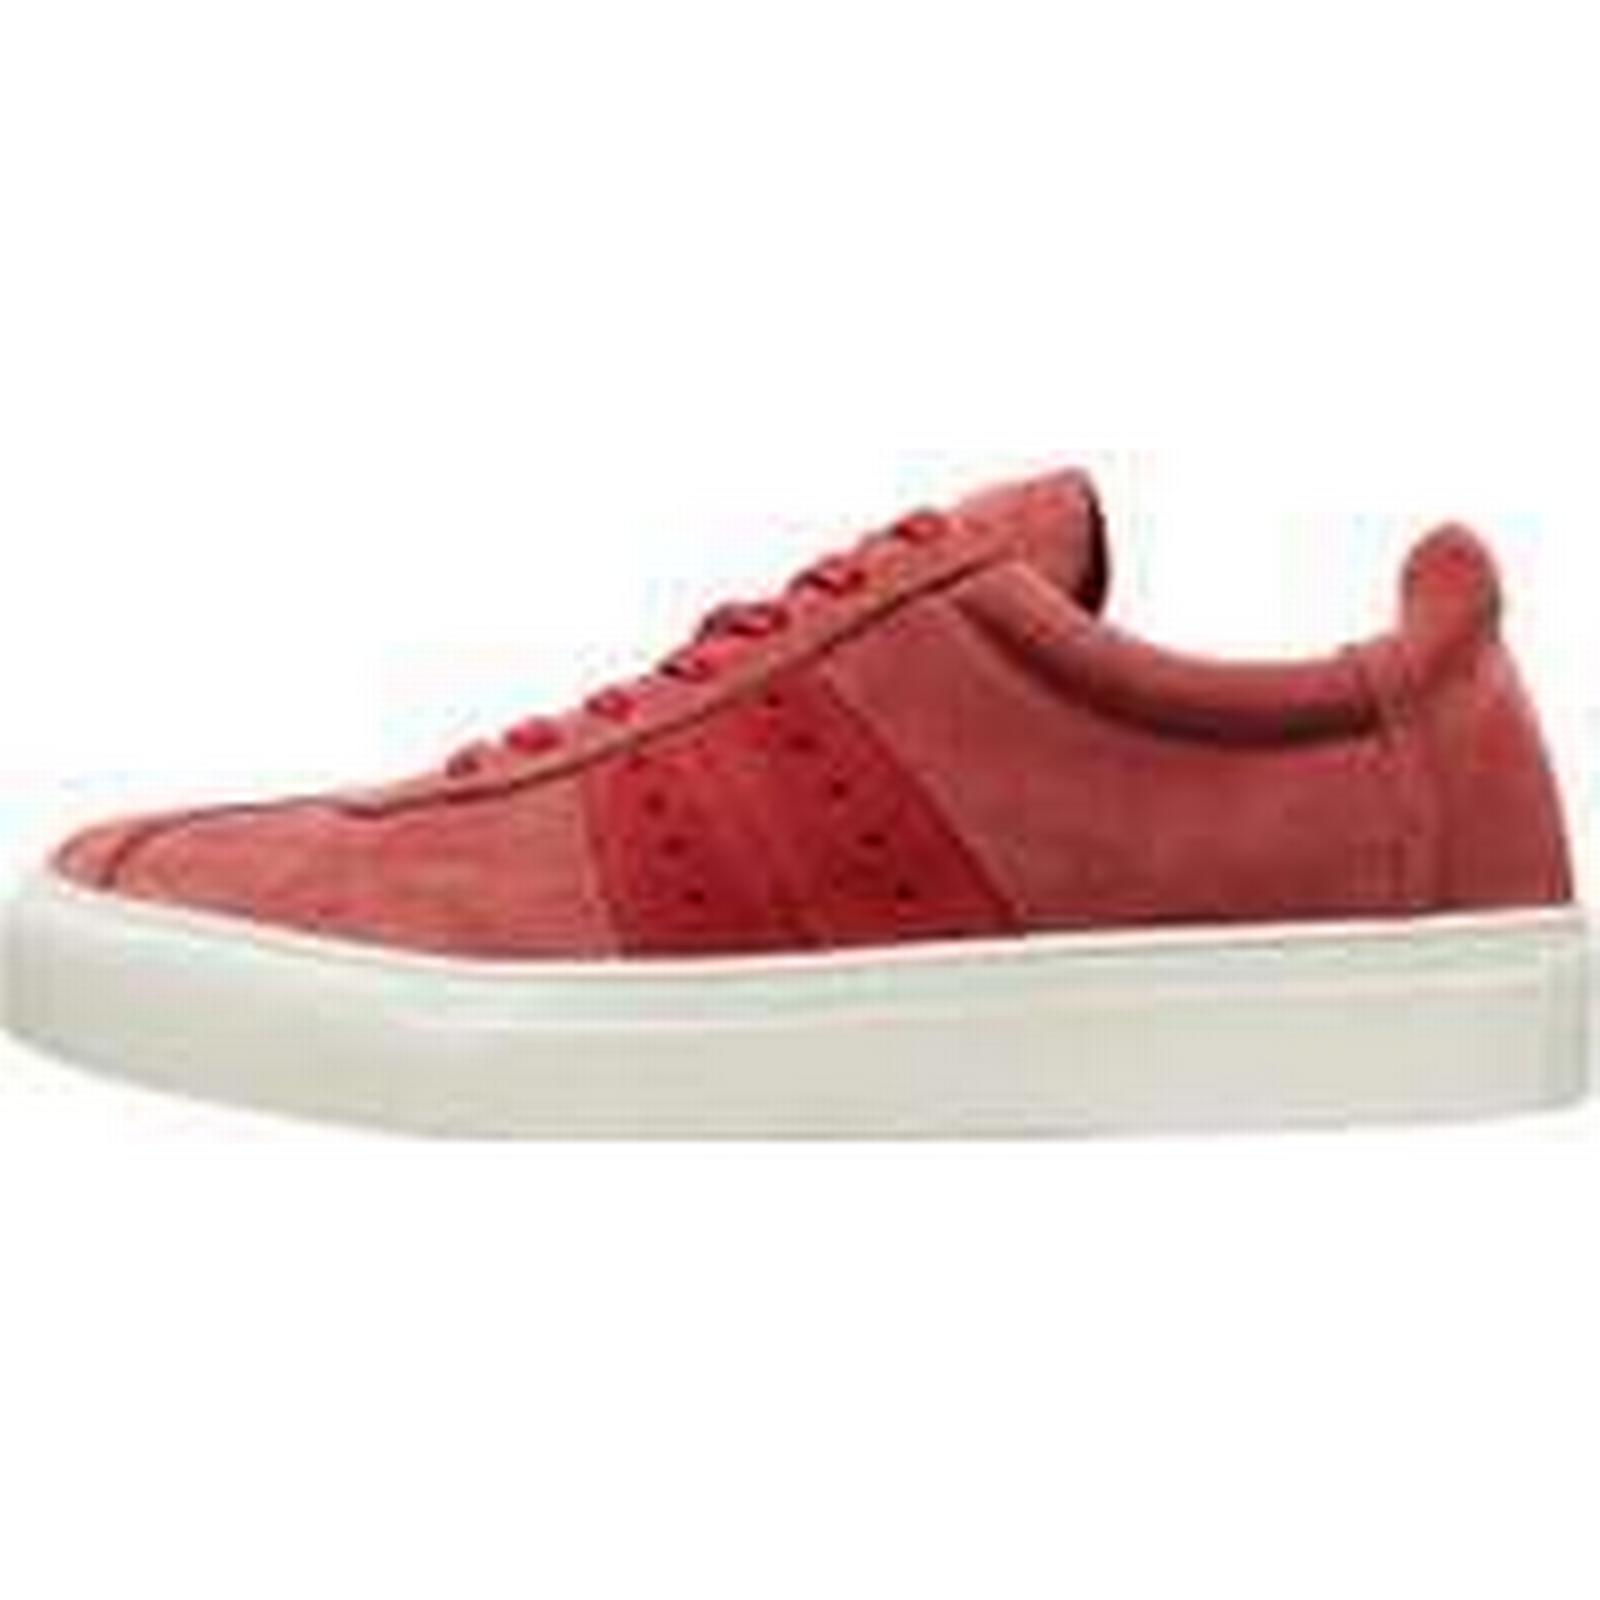 SELECTED Red Suede - Sneakers Women Red SELECTED (37) ded122